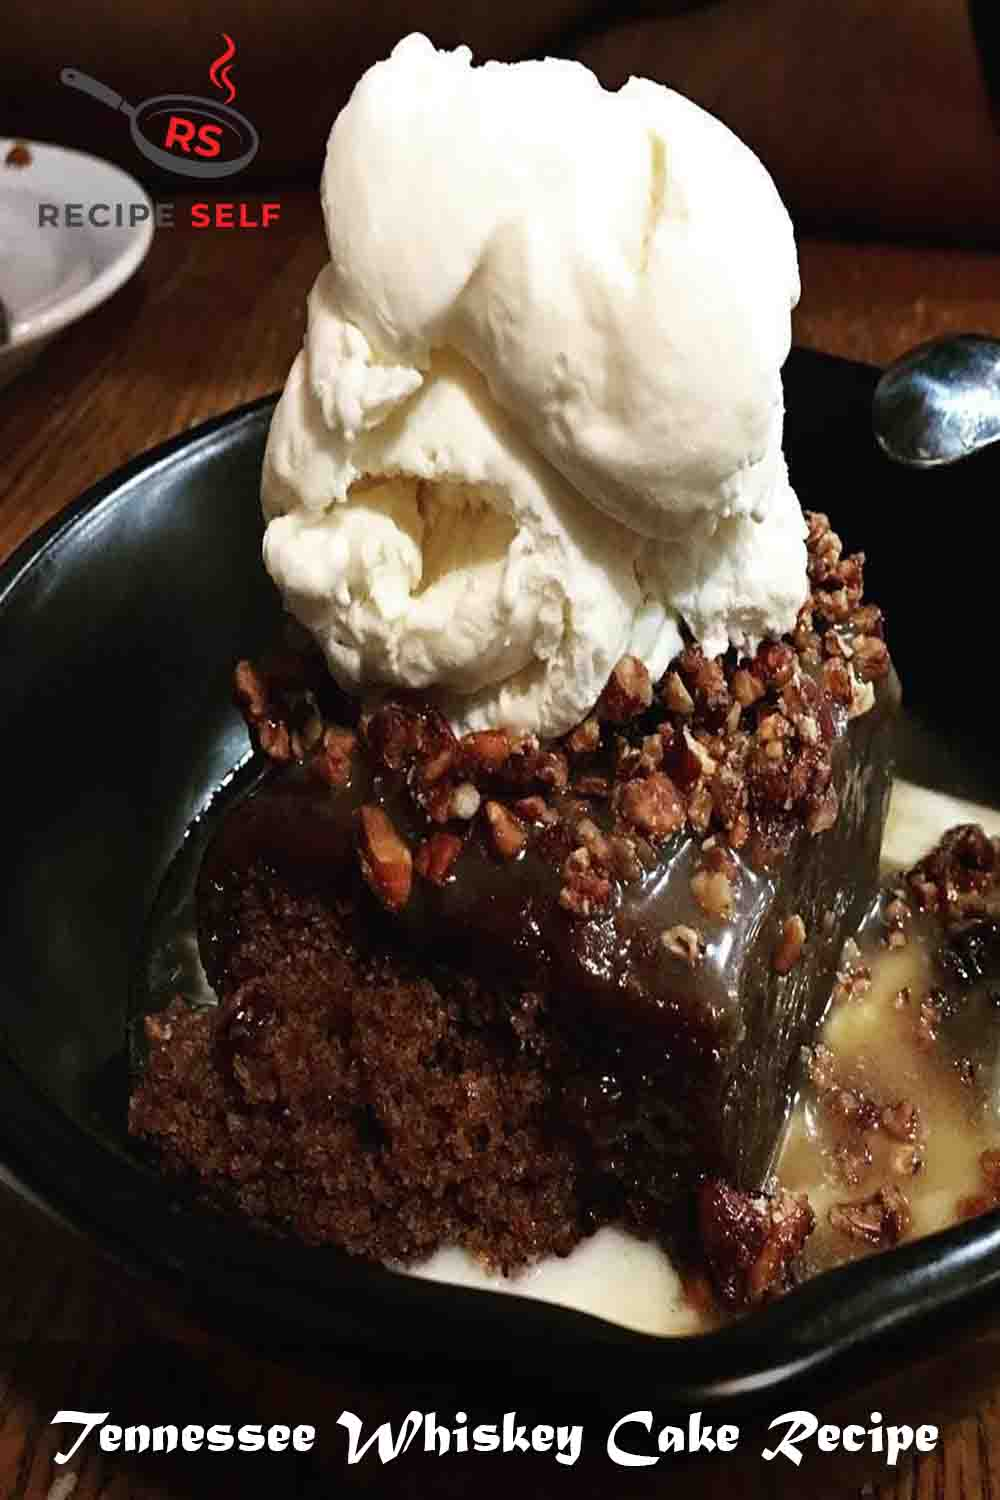 Tennessee Whiskey Cake Recipe